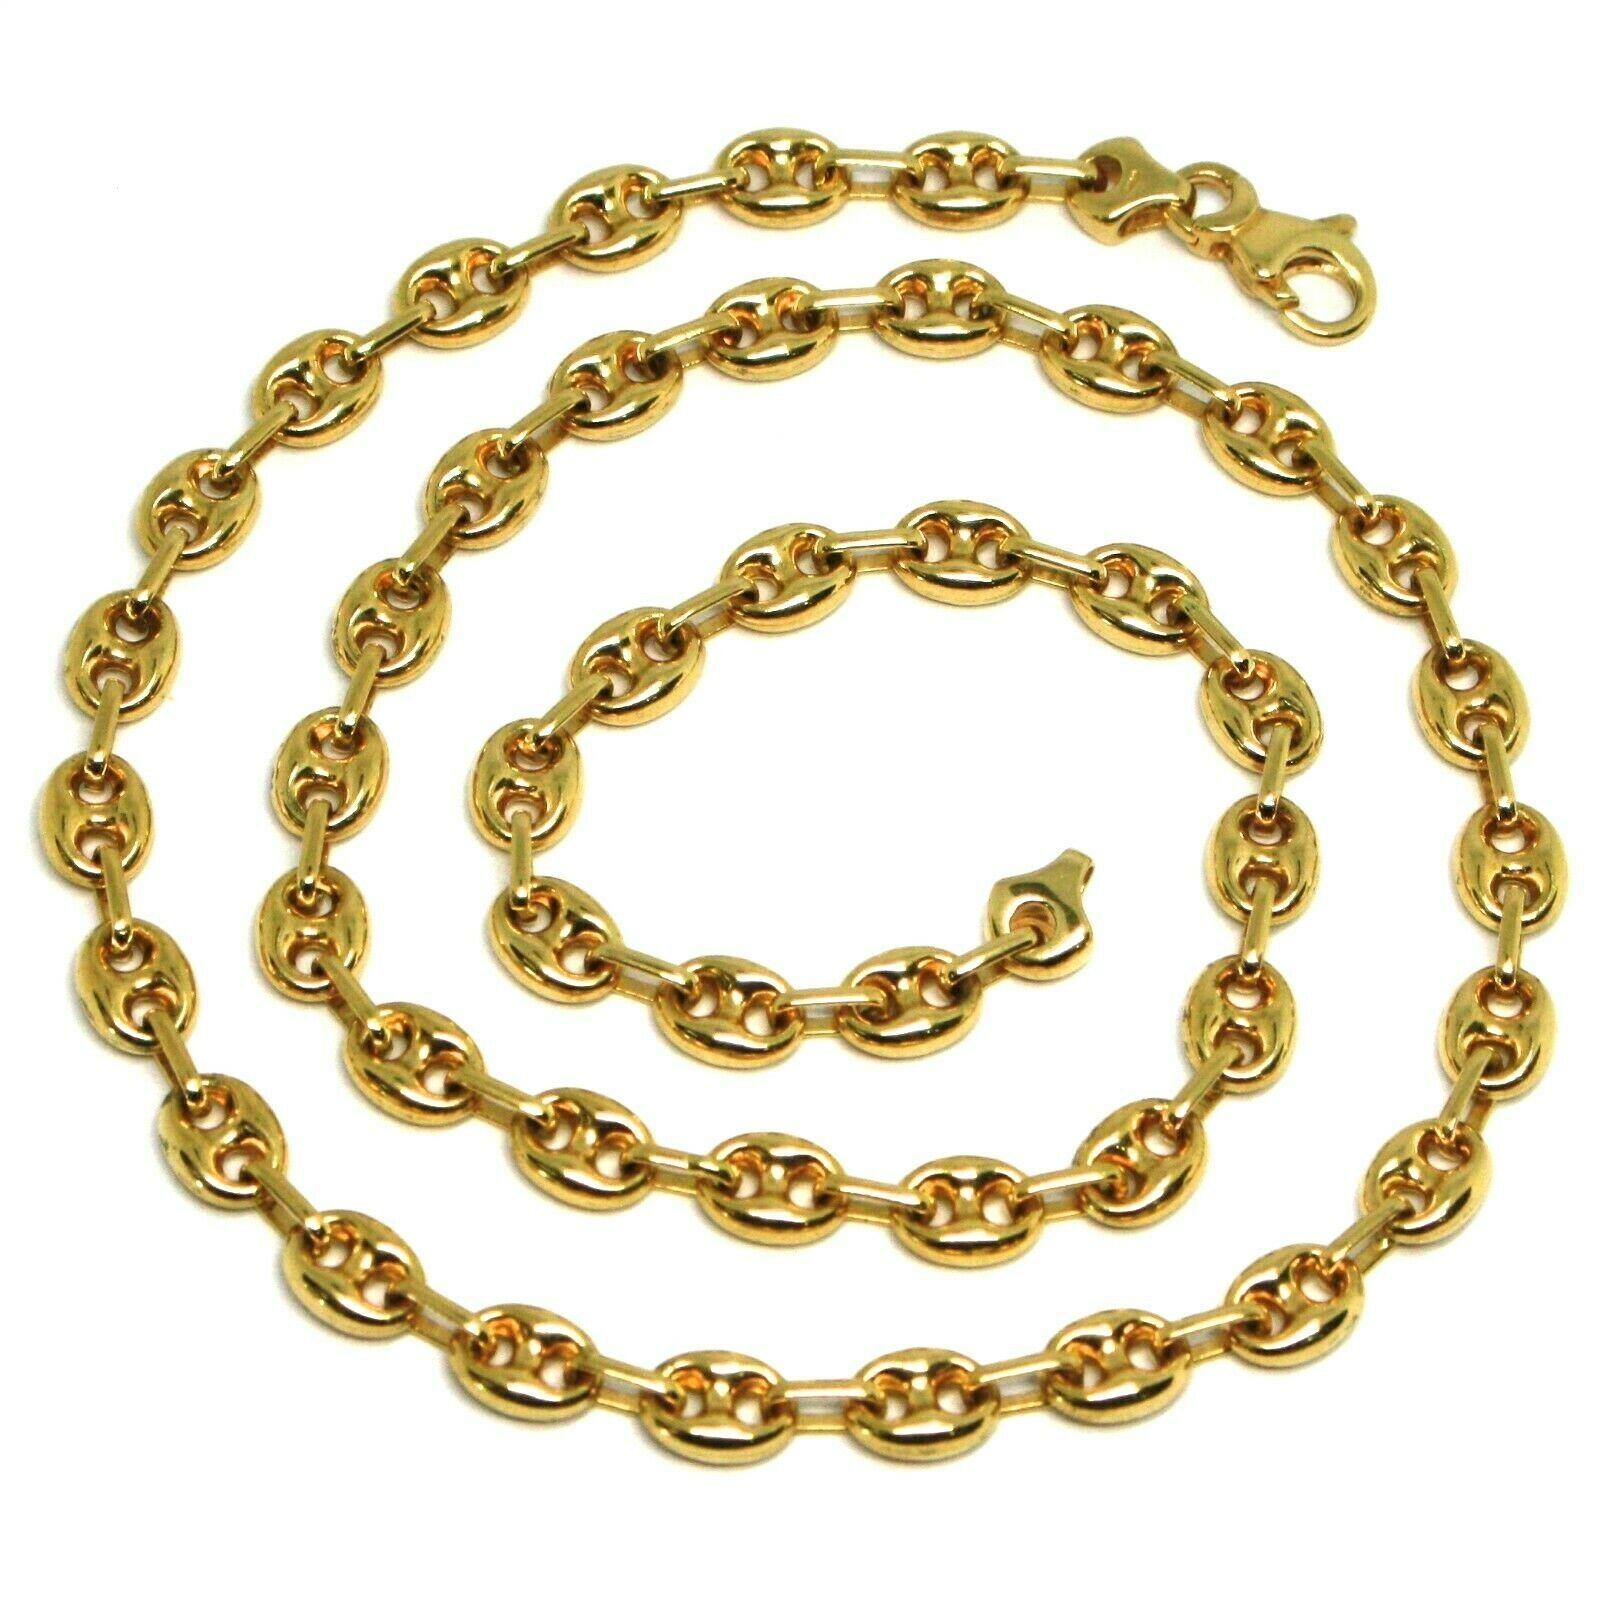 18K YELLOW GOLD SOLID MARINER CHAIN BIG 6 MM, 24 INCHES, ANCHOR ROUNDED NECKLACE